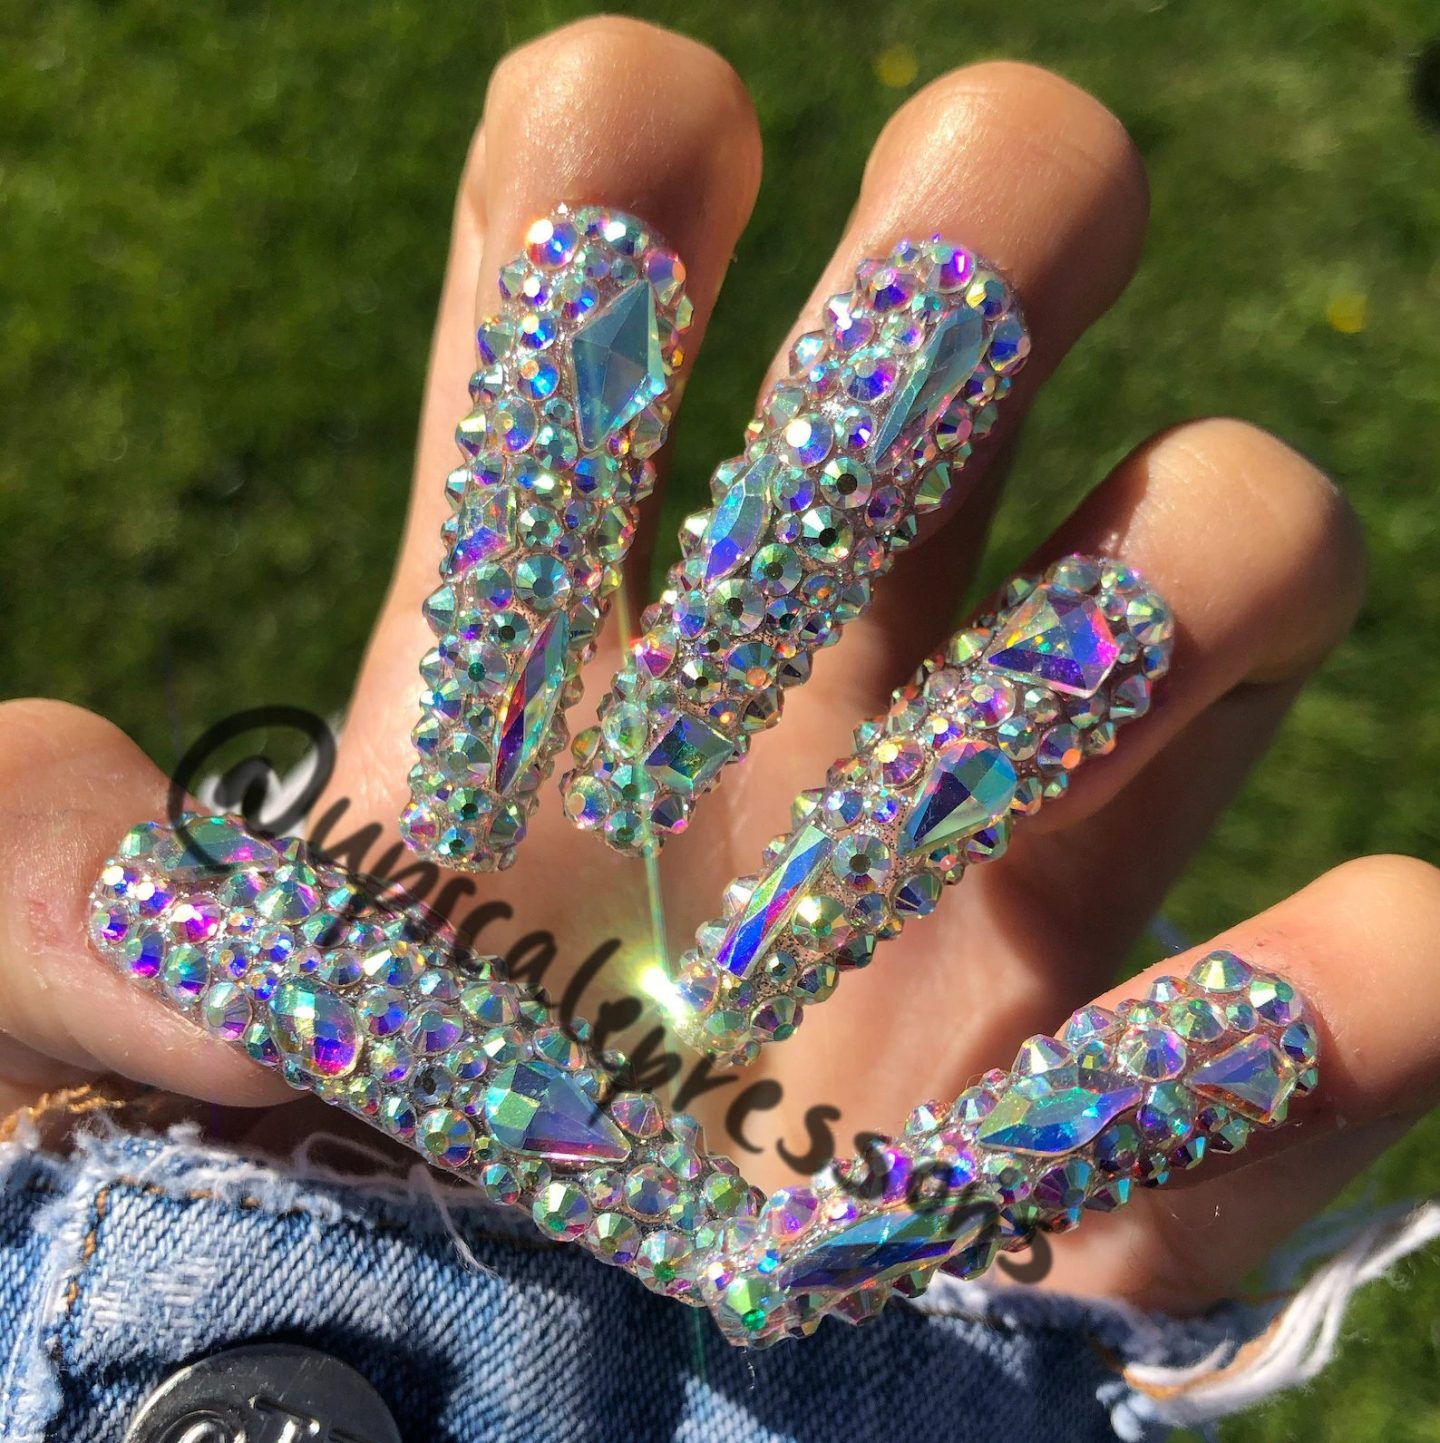 Long rhinestone nails with crystals in coffin shape